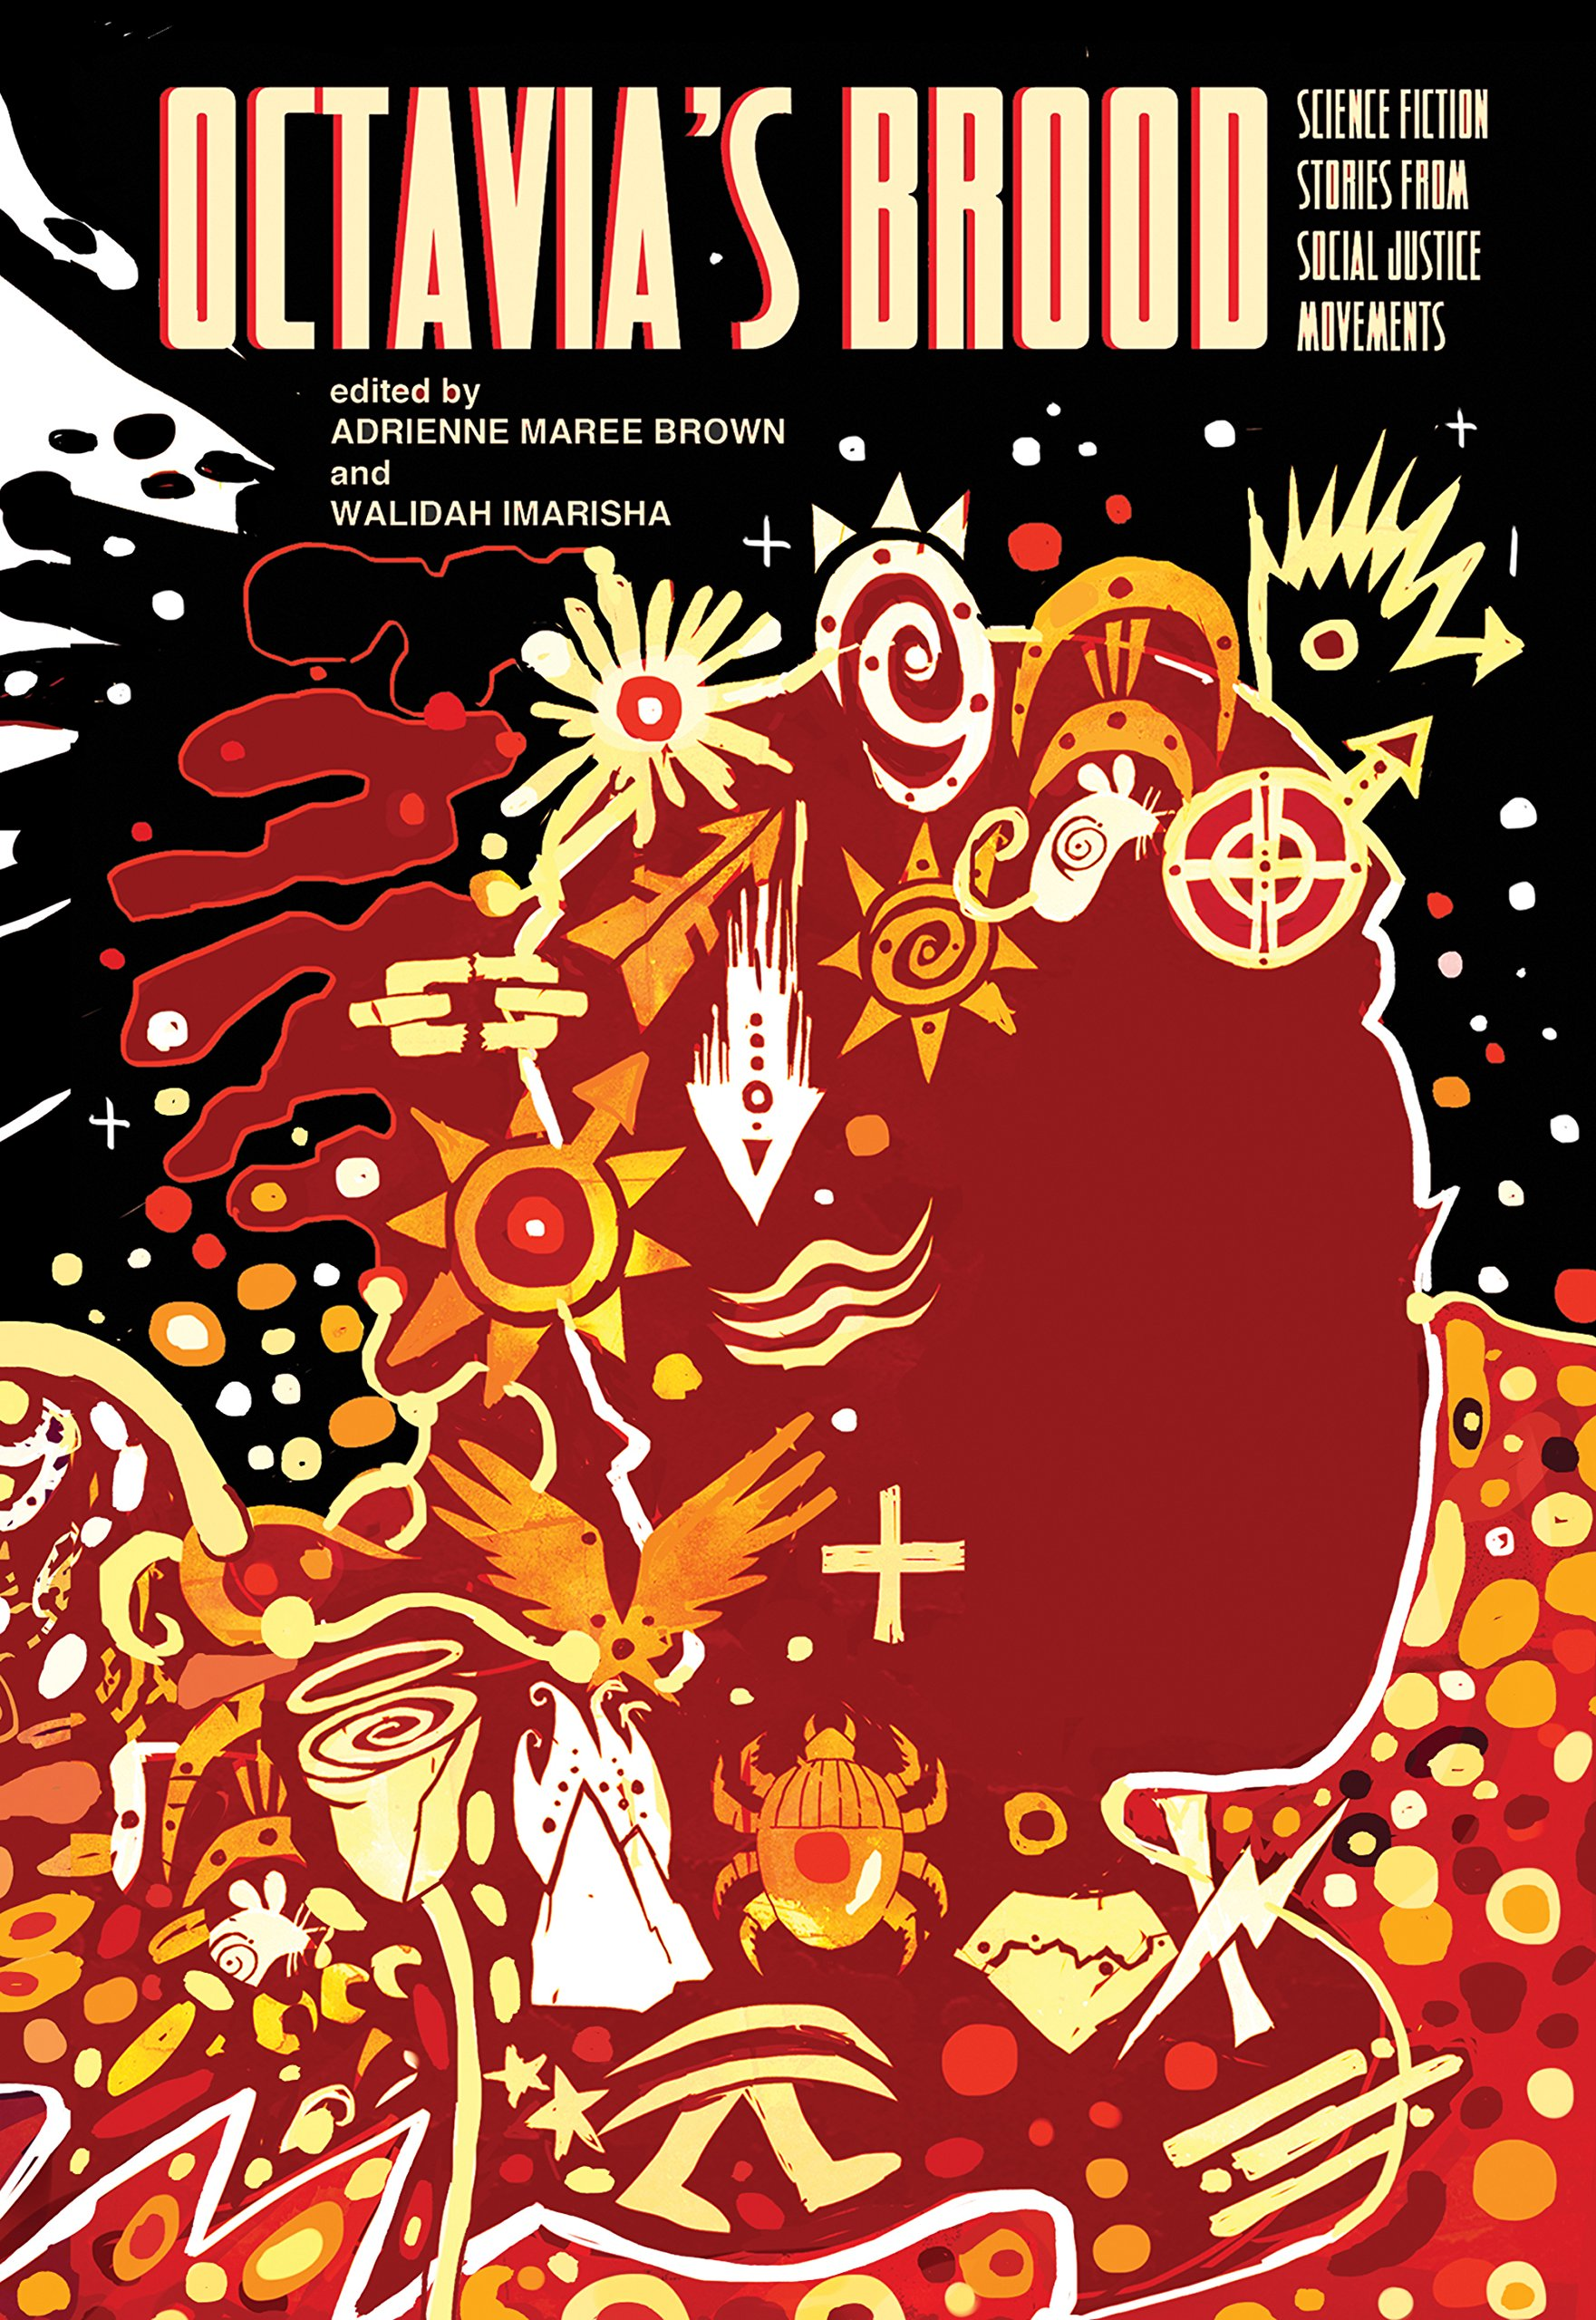 Download Octavias Brood Science Fiction Stories From Social Justice Movements By Adrienne Maree Brown